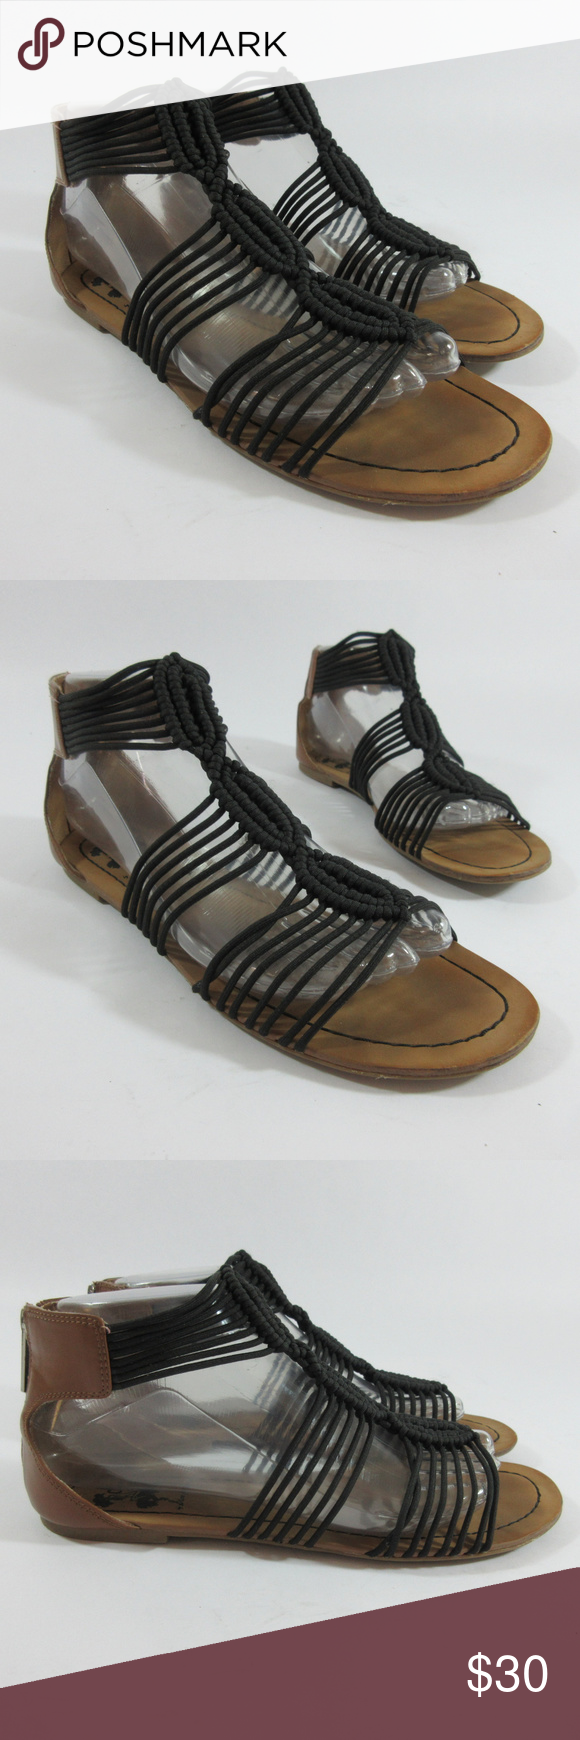 4c684a50a9b6 Sam Edelman Circus Becca Zip Back Gladiator Sandal Sam Edelman Circus Becca  Black Zip Back Gladiator Sandals Women s Size 8 M Pre-owned  Very good  condition ...